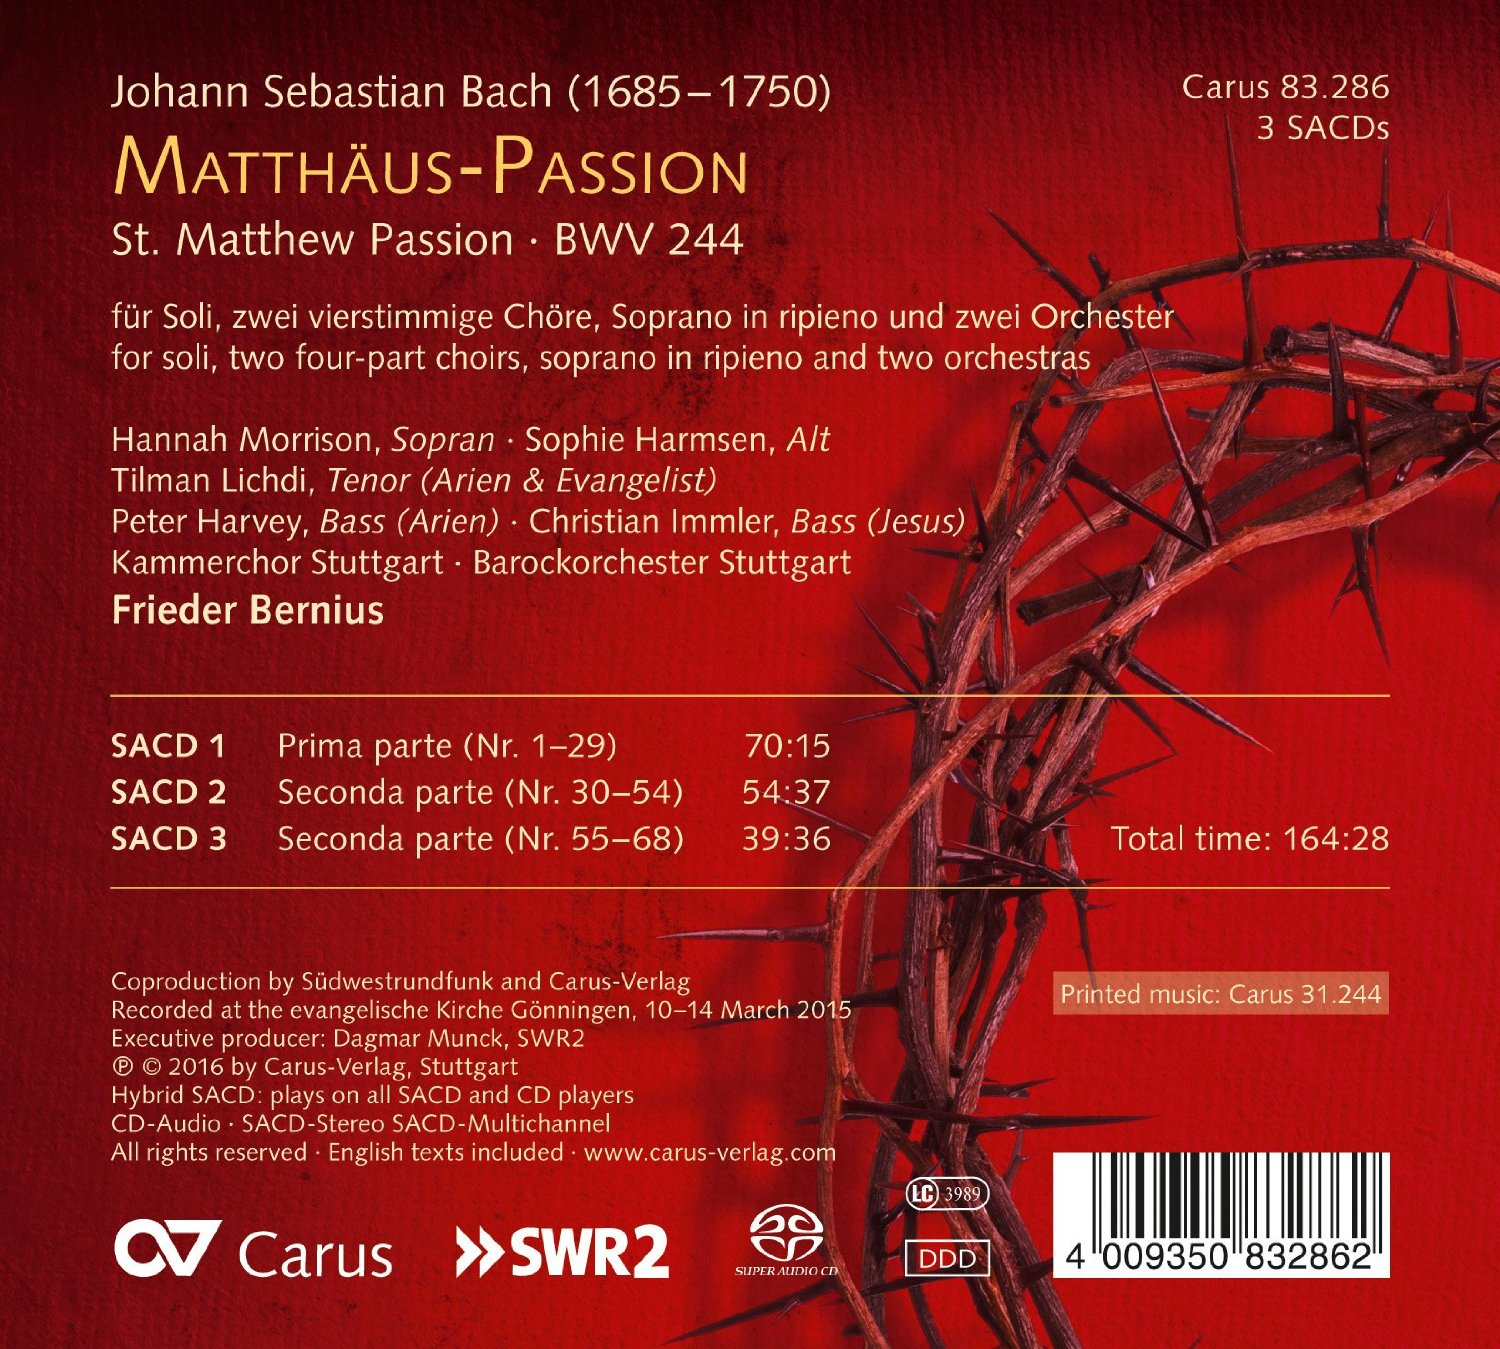 Bios Veldhoven Matthaus Passion Bwv 244 Discography Part 8 Complete Recordings